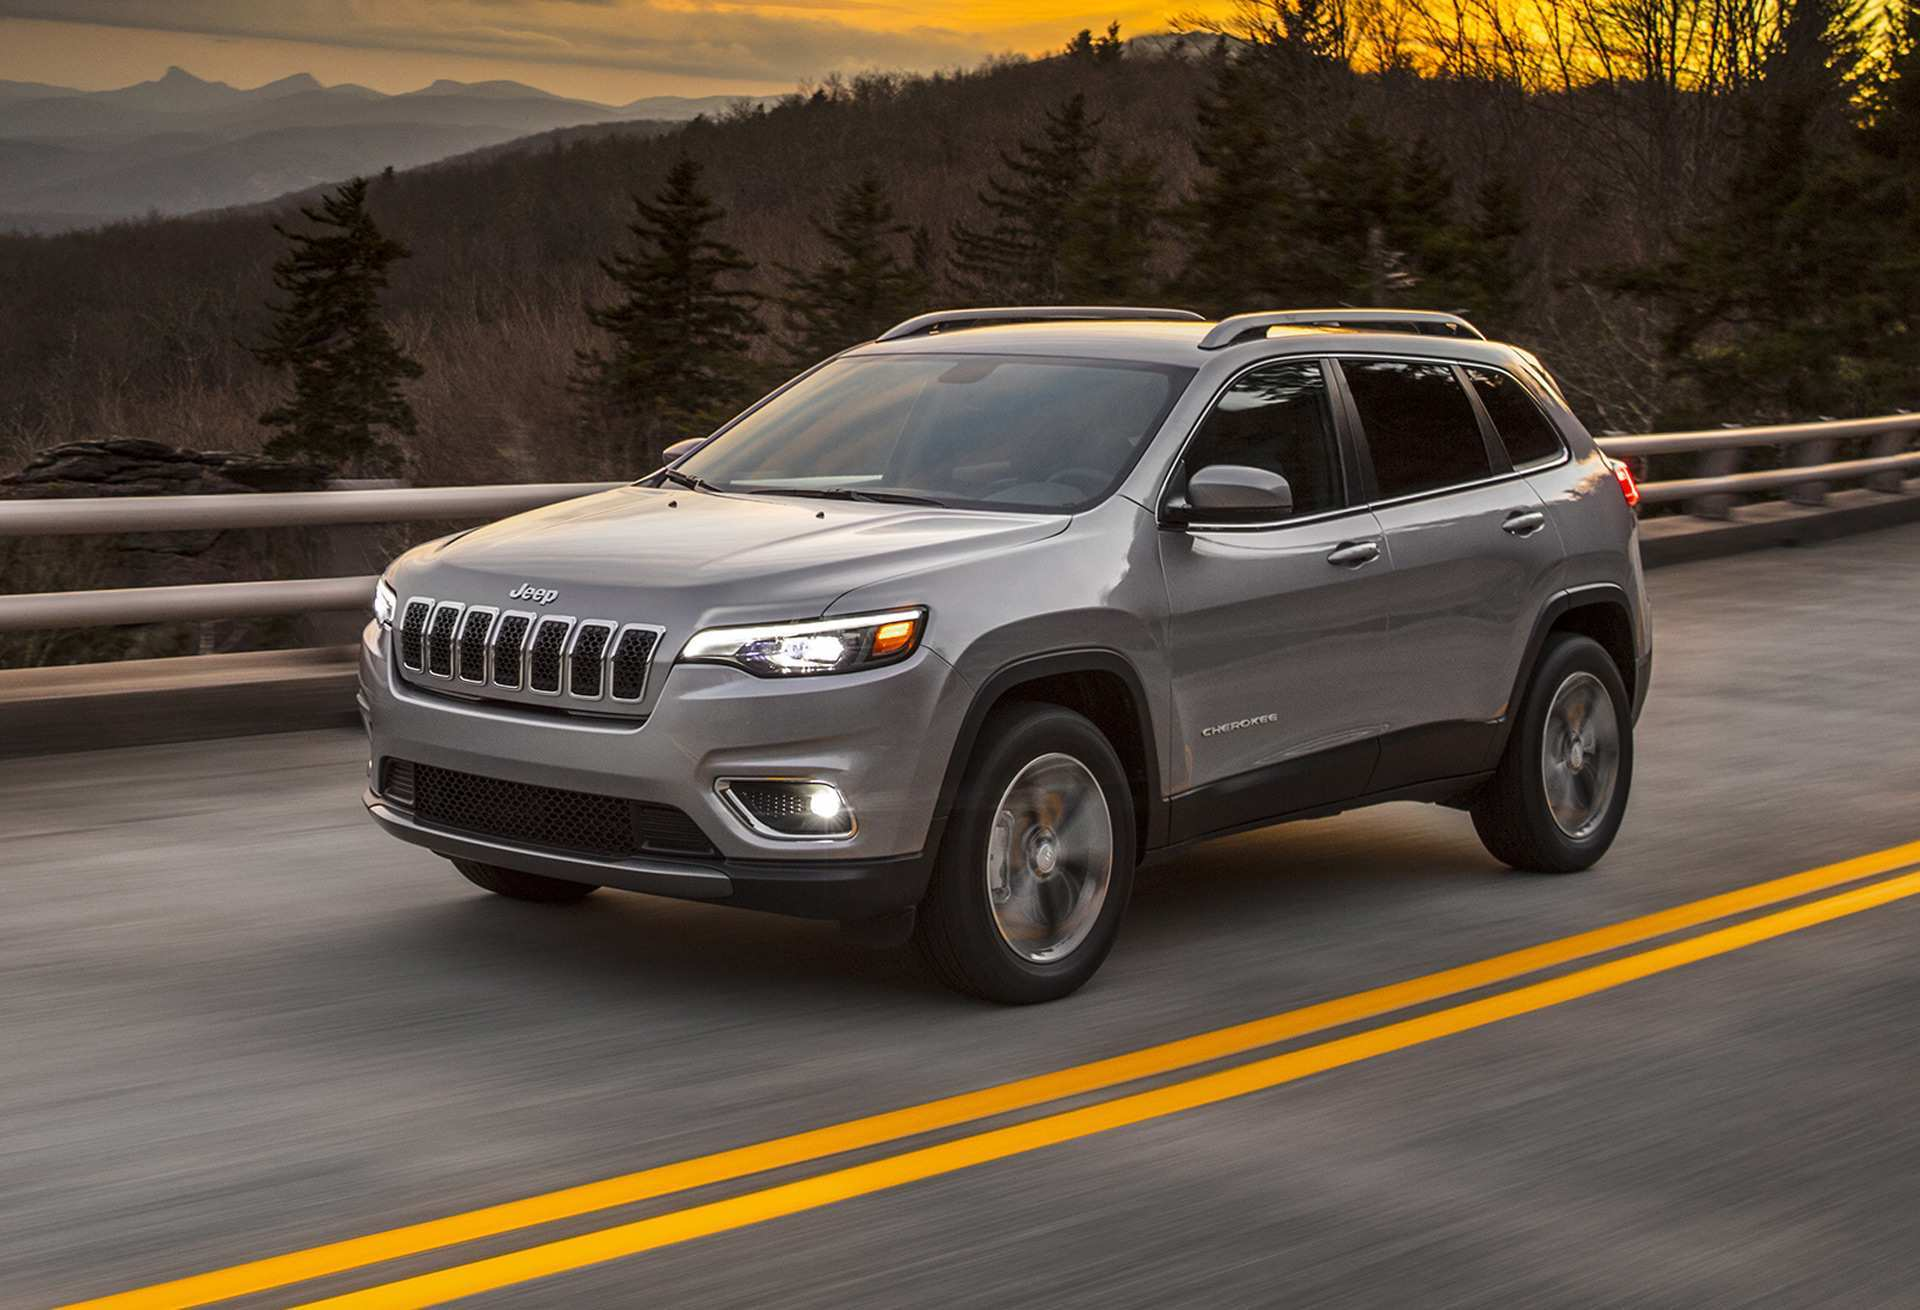 57 The Best 2020 Jeep Cherokee Release Date